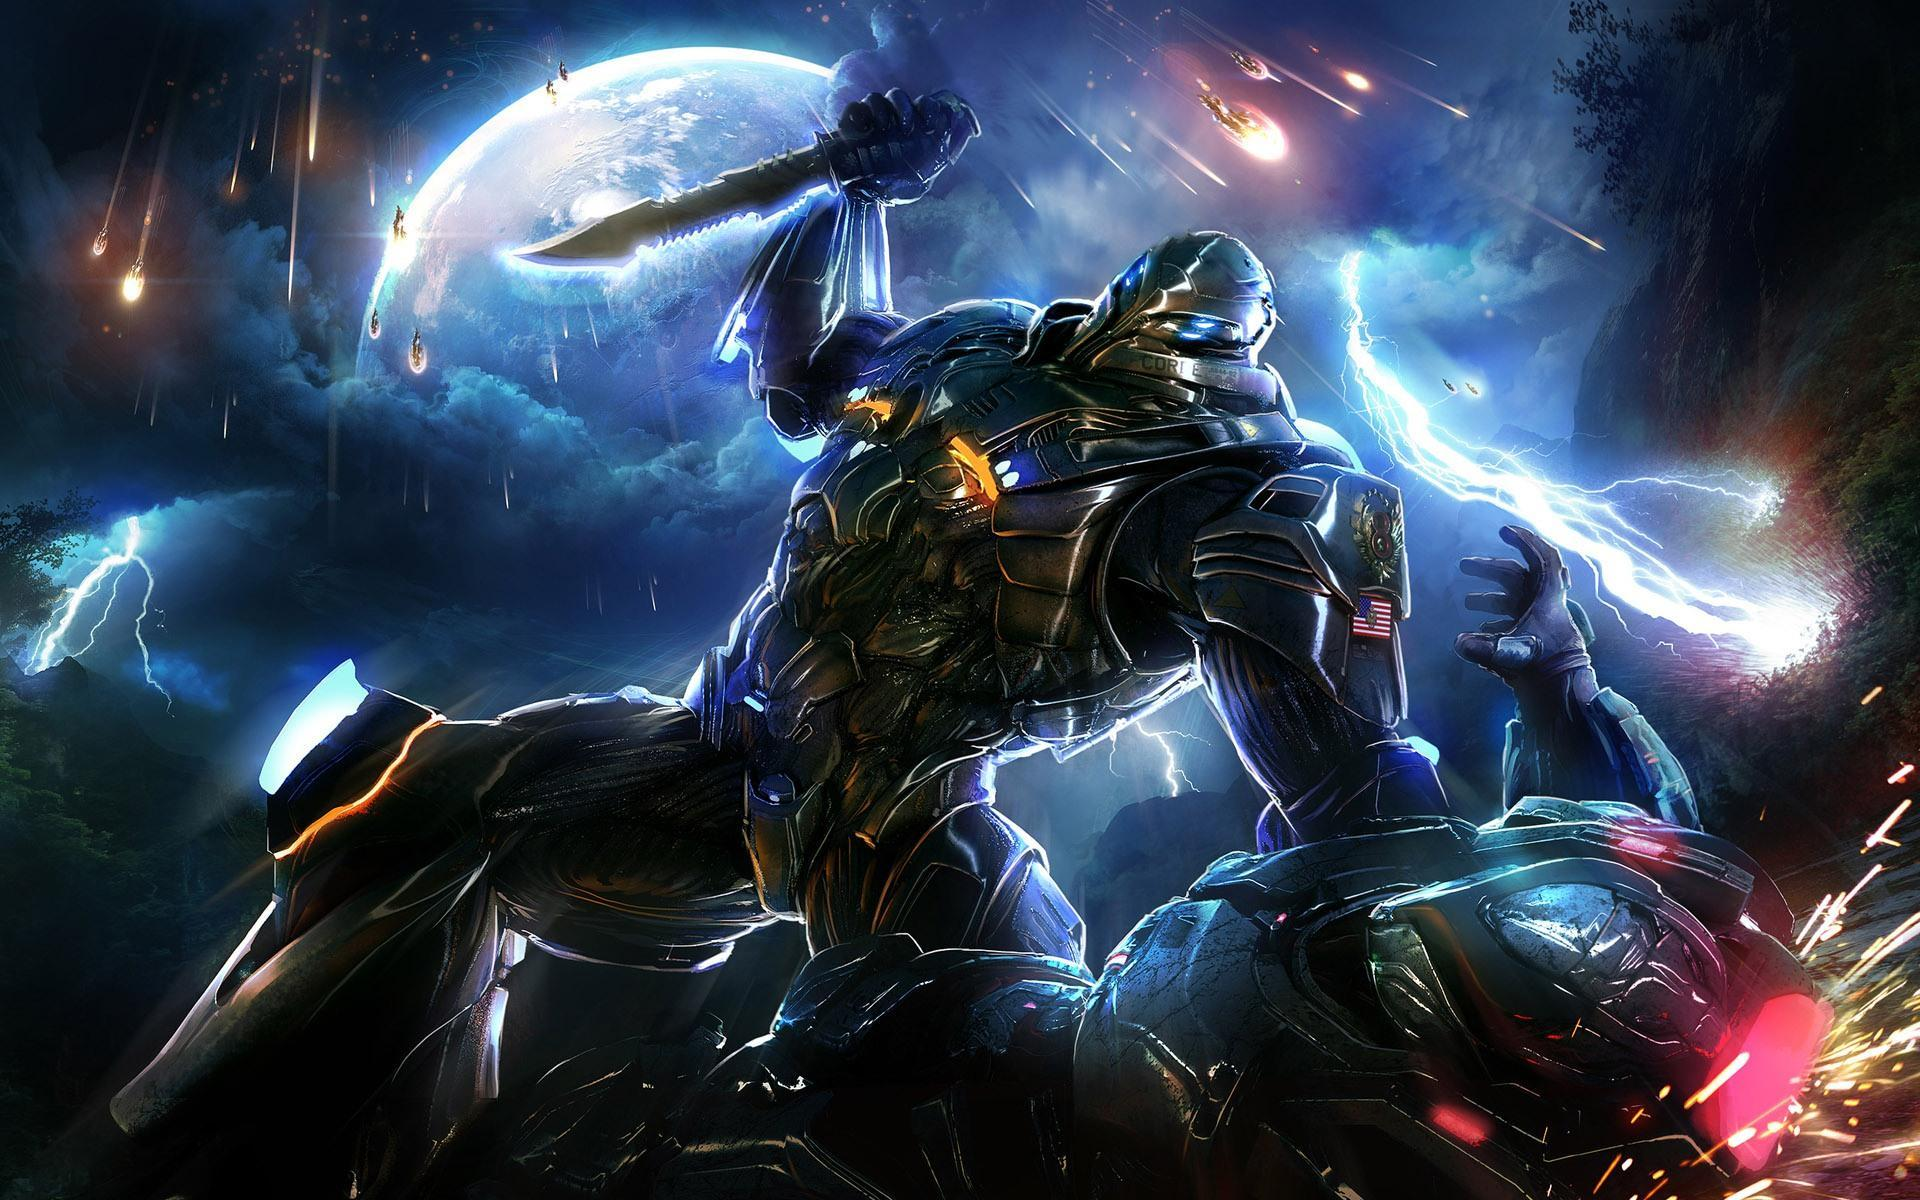 Starcraft Wallpaper 2018 For Android Apk Download